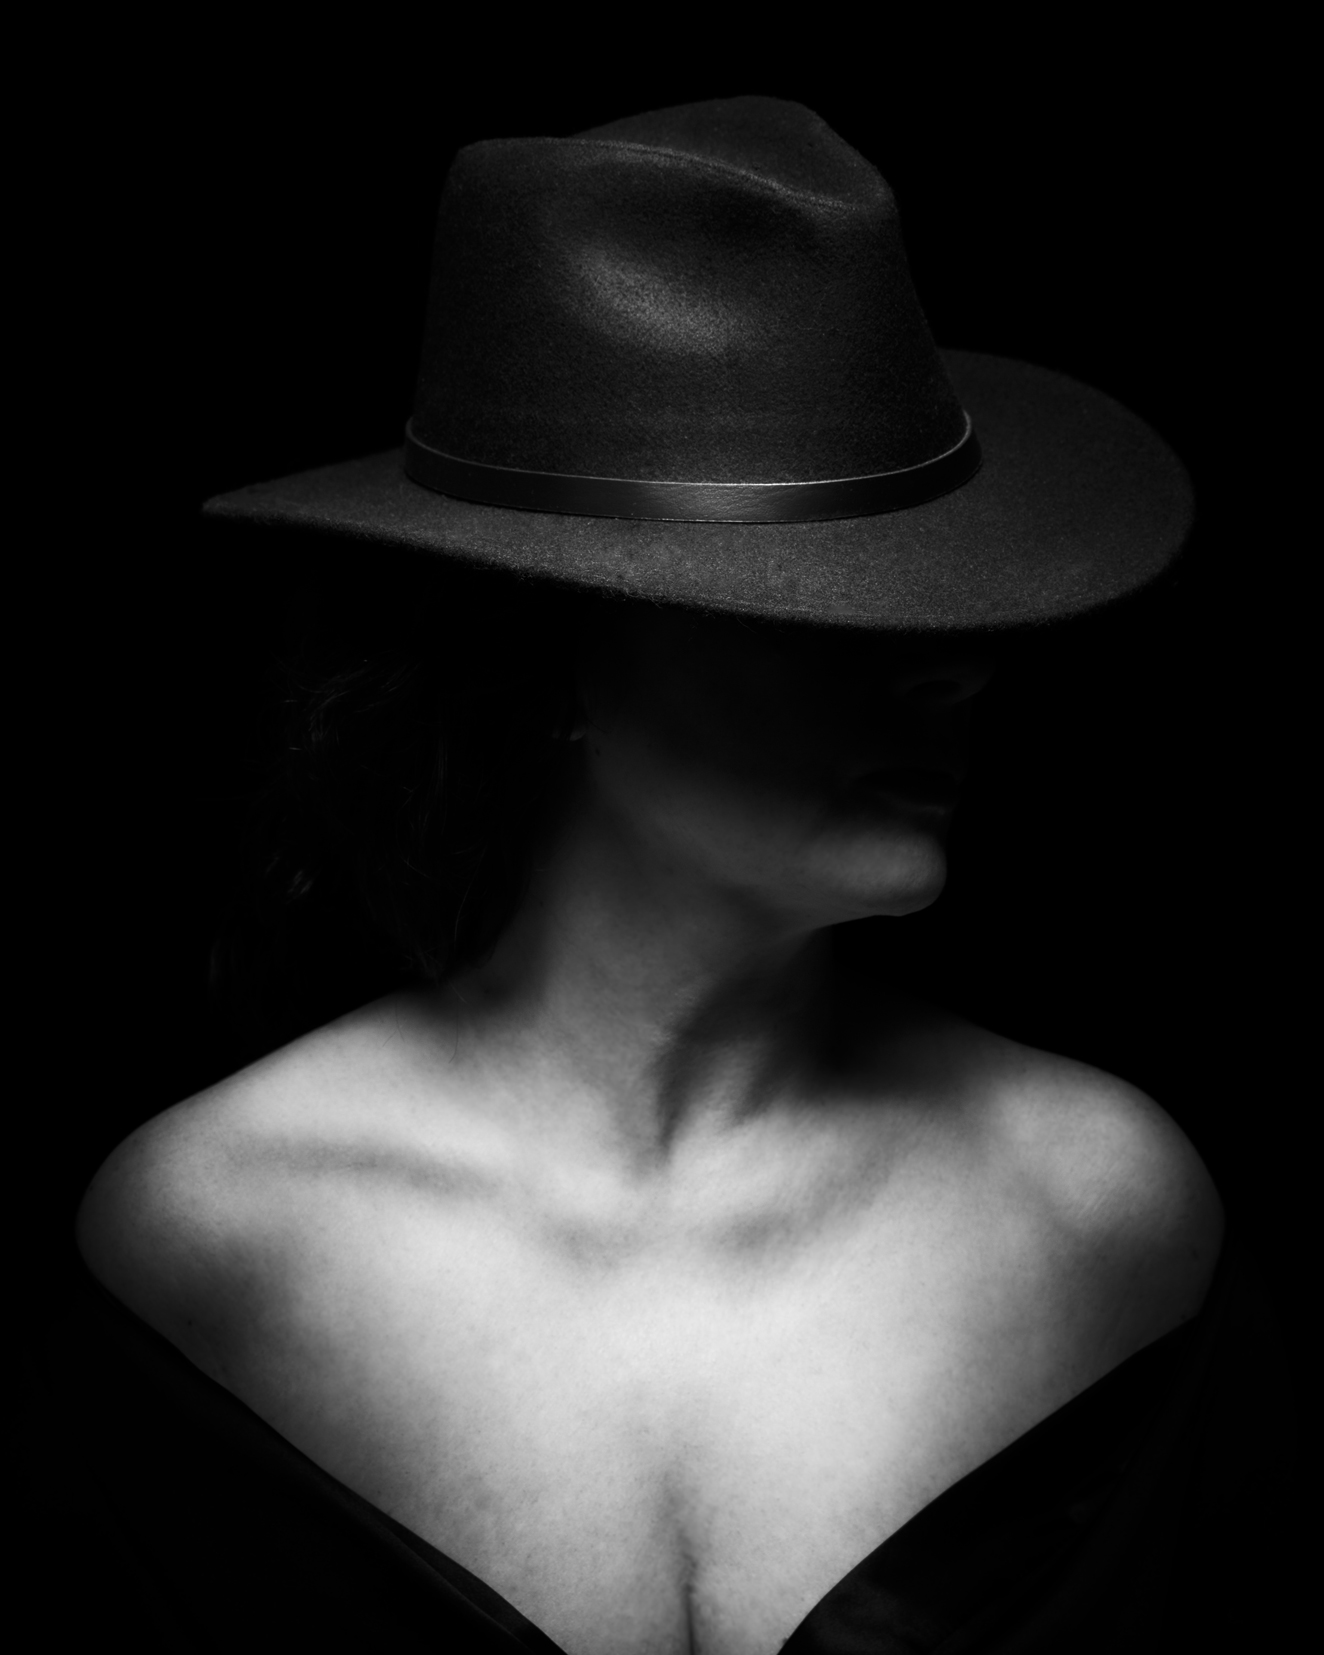 Lady with Fedora